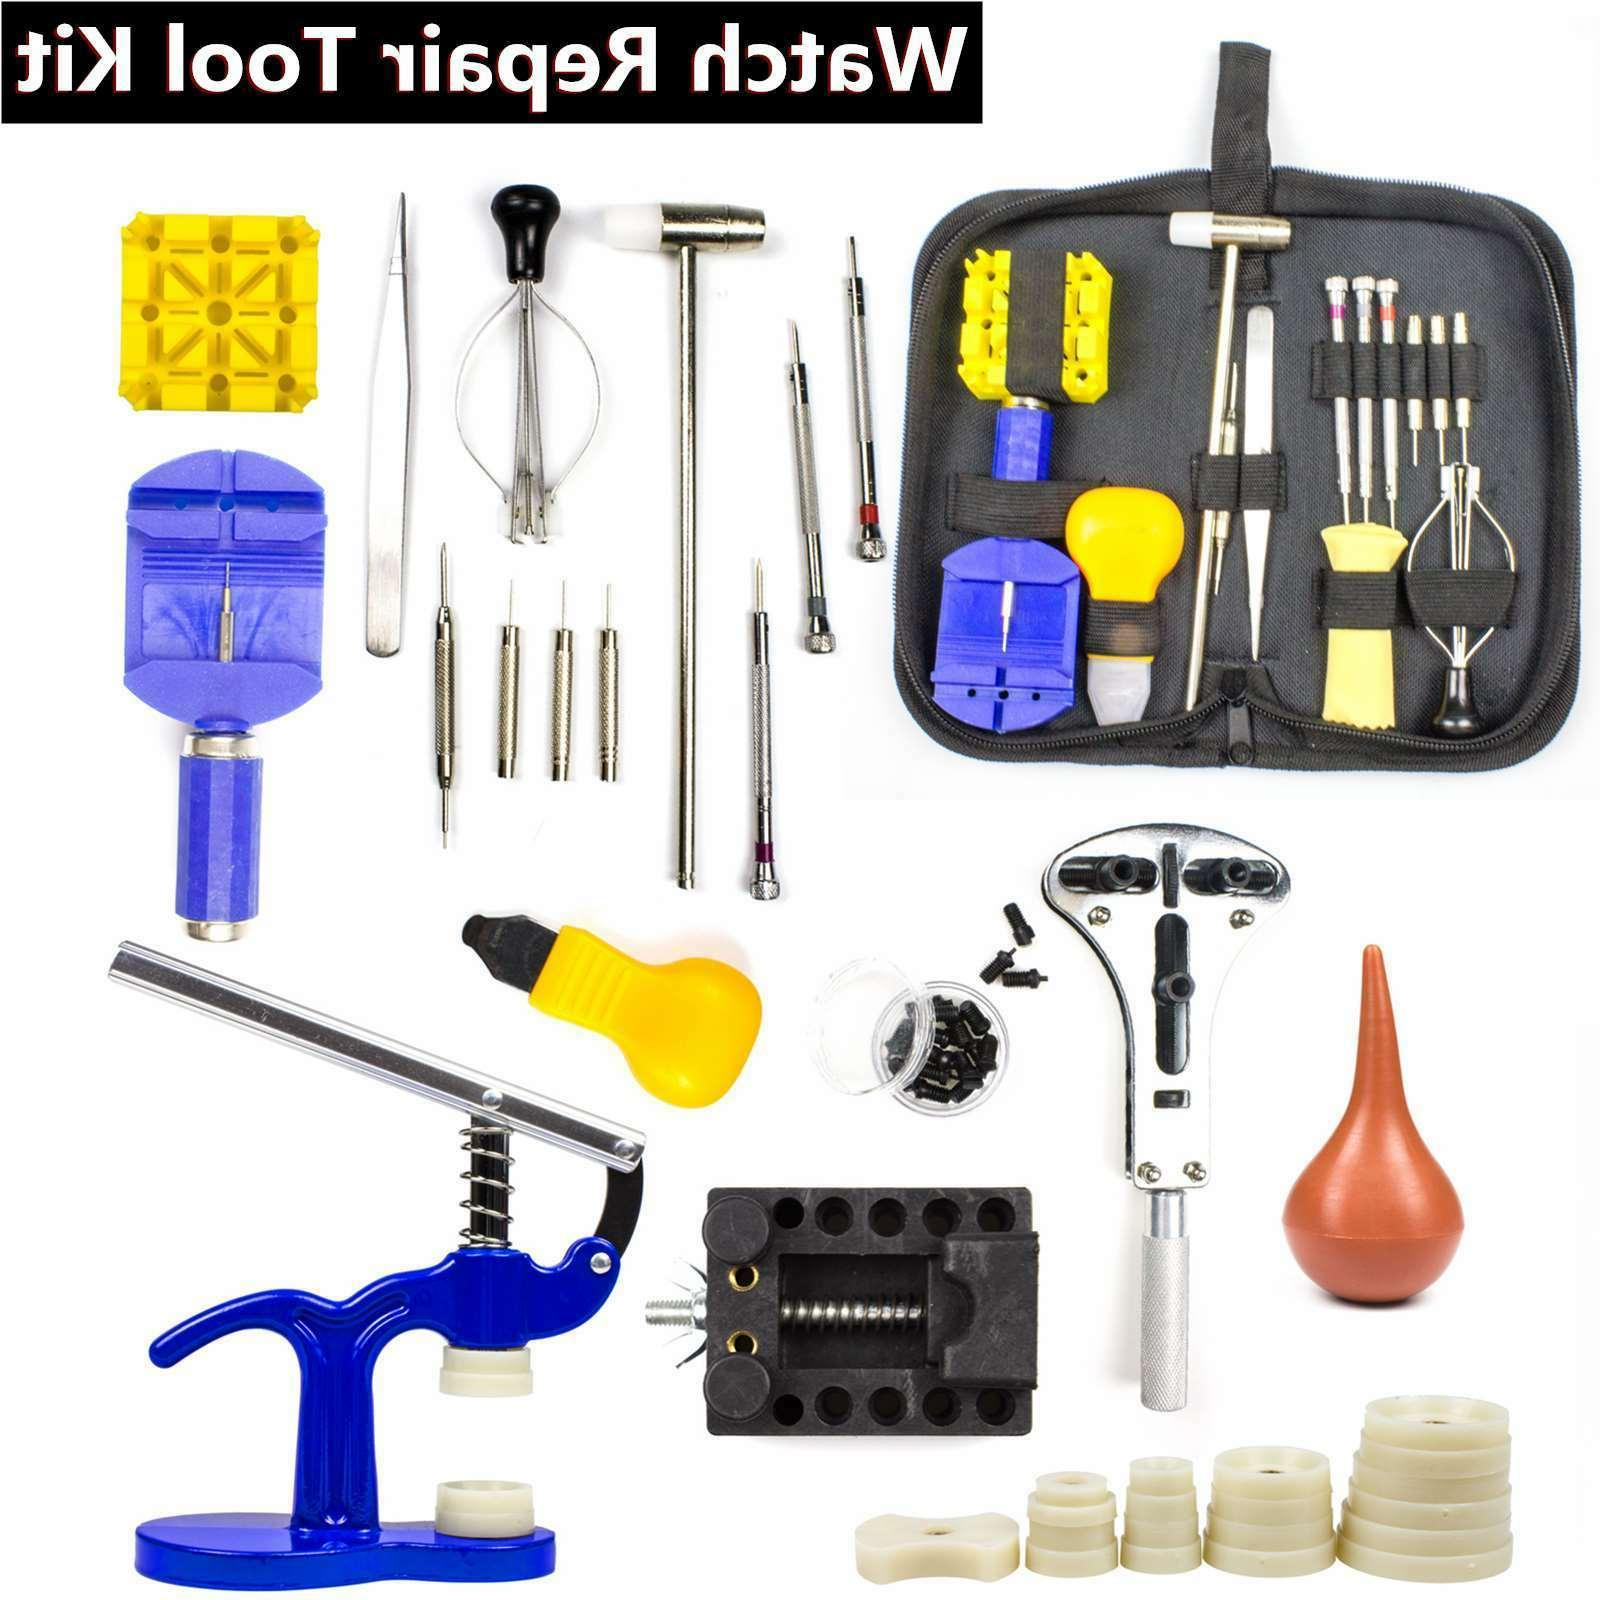 Watch Repair Tool Kit Case Opener Link Remover Spring Bar Sc